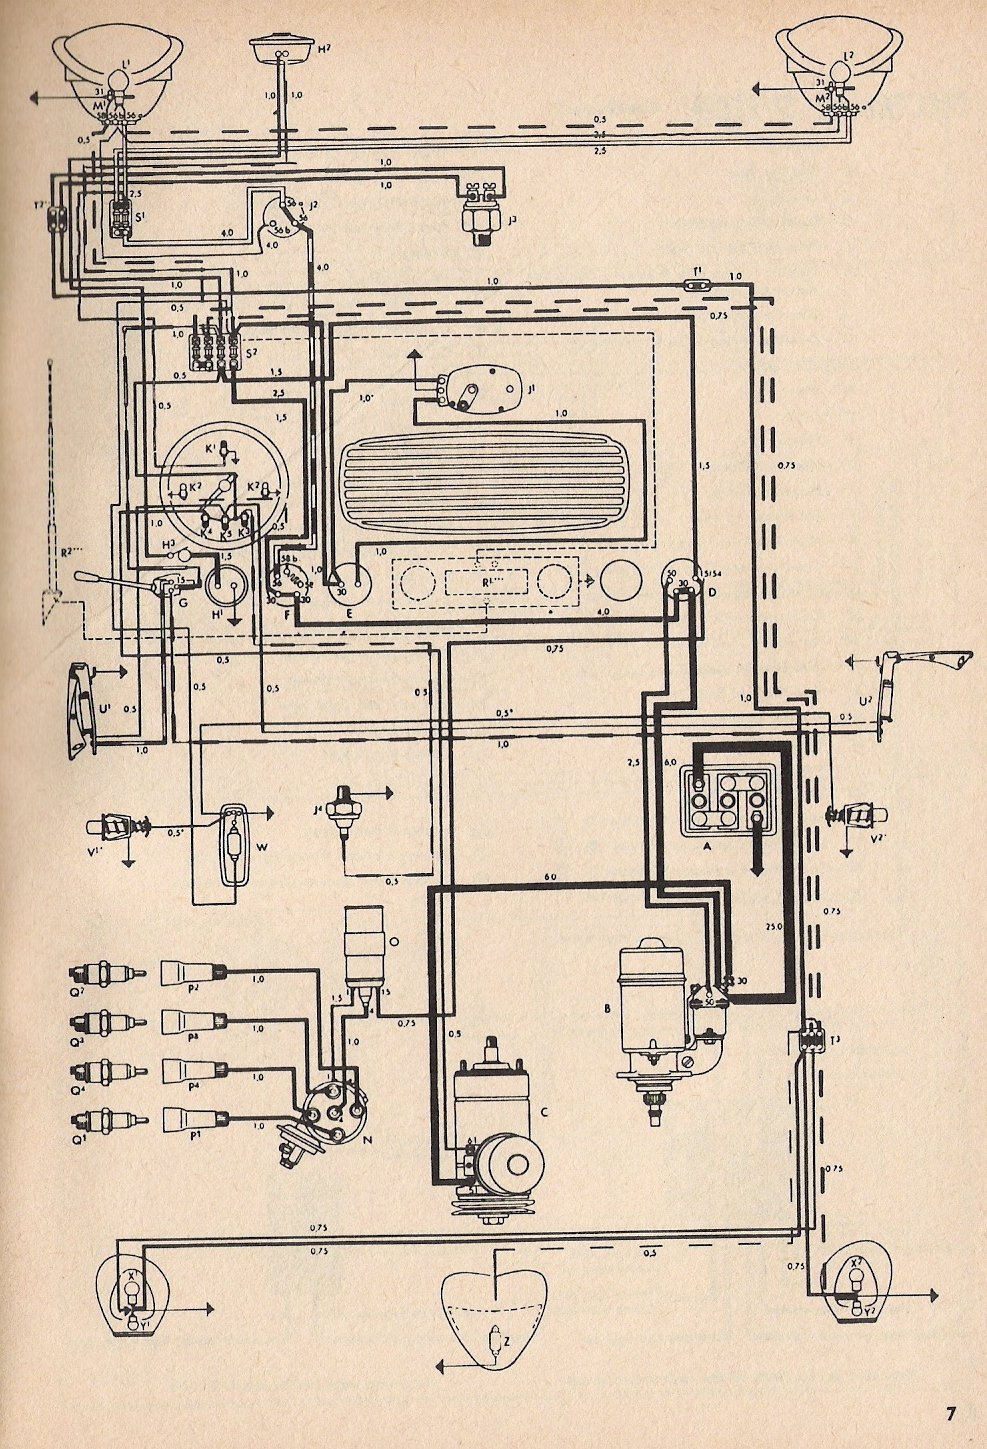 bug_54 thesamba com type 1 wiring diagrams 1957 vw beetle wiring diagram at bayanpartner.co